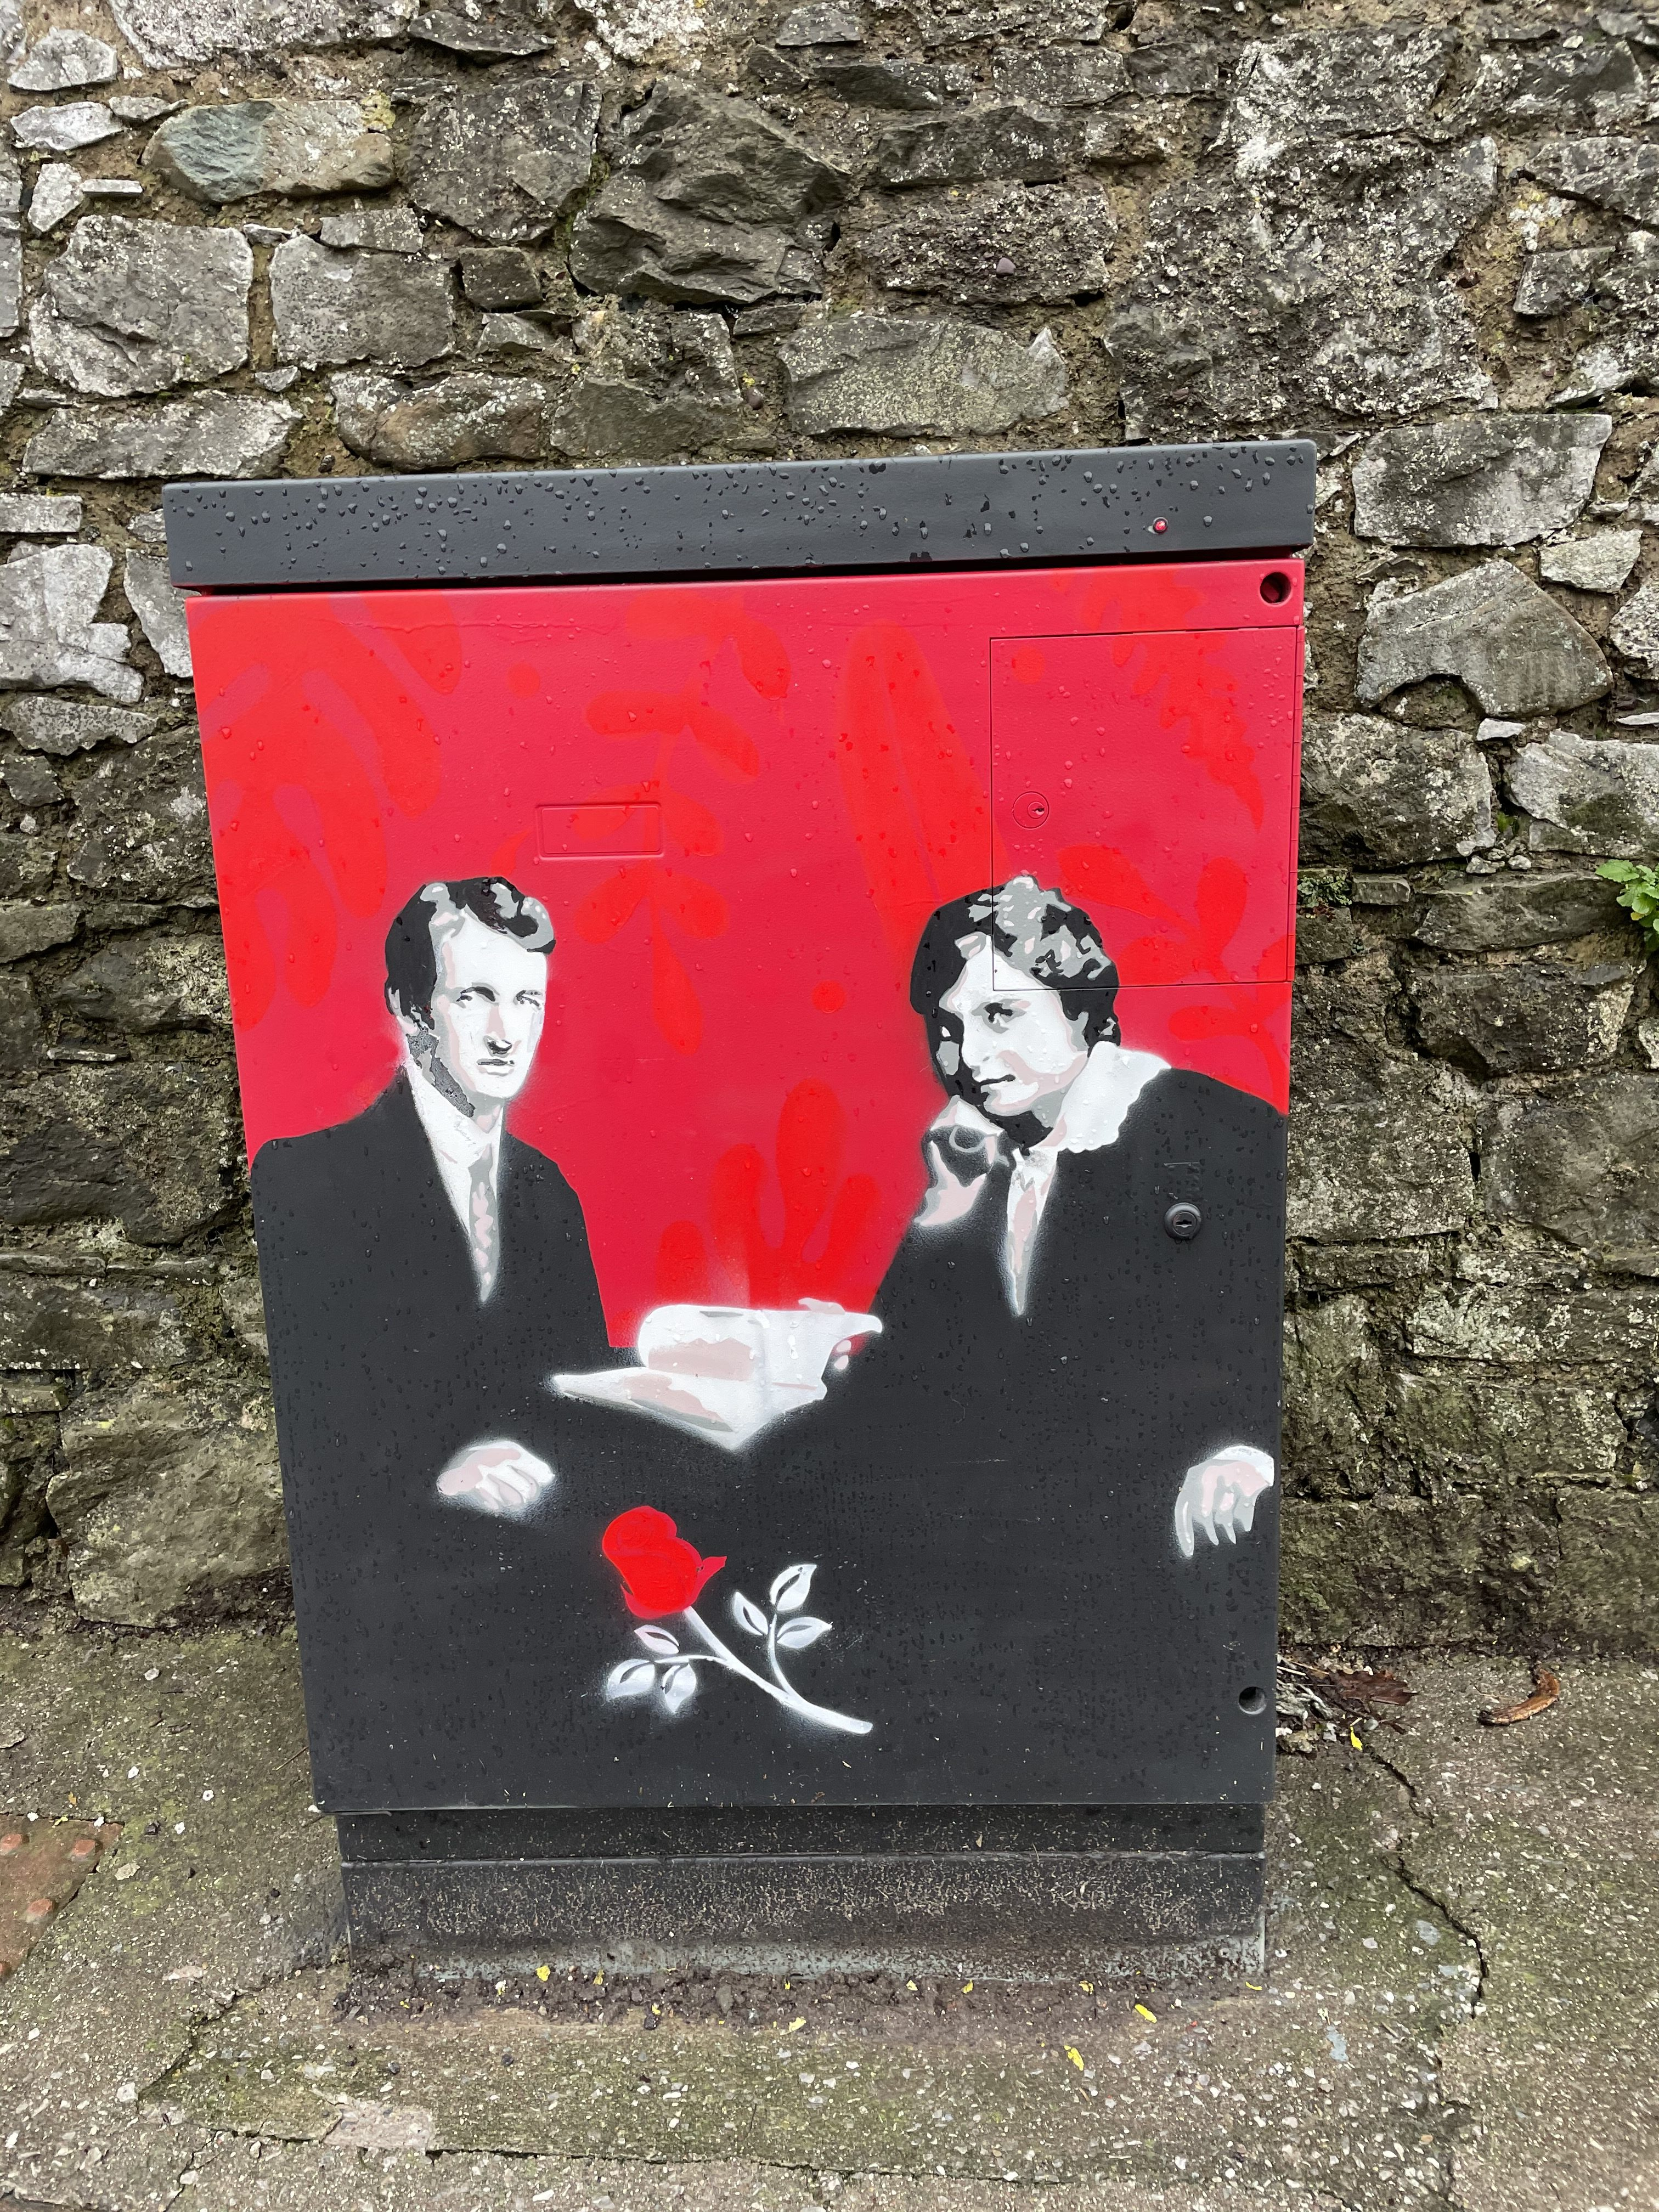 Terence and Muriel MacSwiney by Kevin O'Brien Commissioned by Cllr Kieran McCarthy